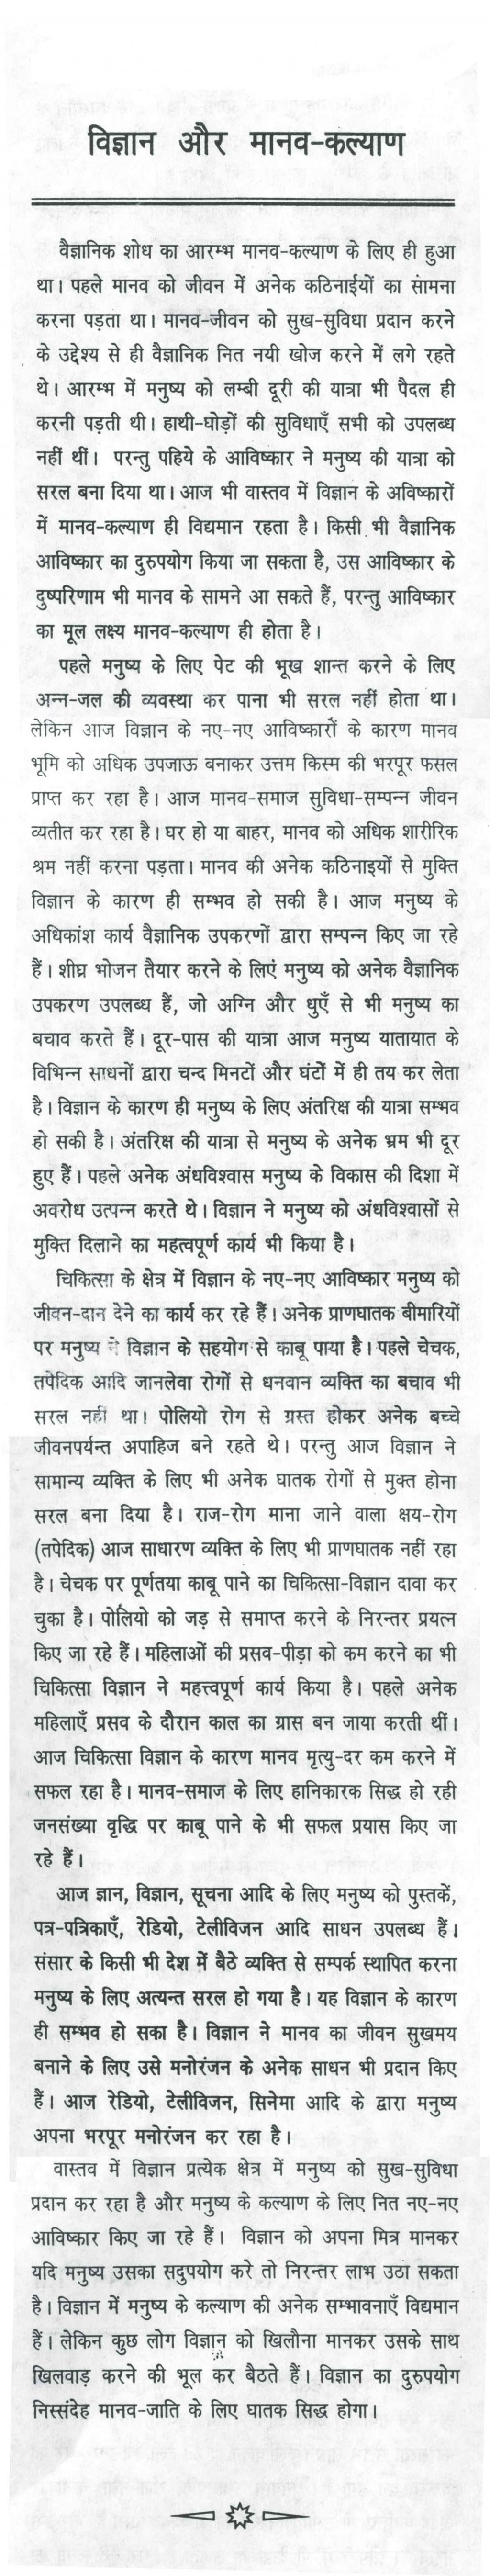 019 Advantage And Disadvantage Of Science Essay Example Benefit Education On Importance In Hindi Advantages Disadvantages Higher 10061 Benefits Shocking With Quotes Language Large